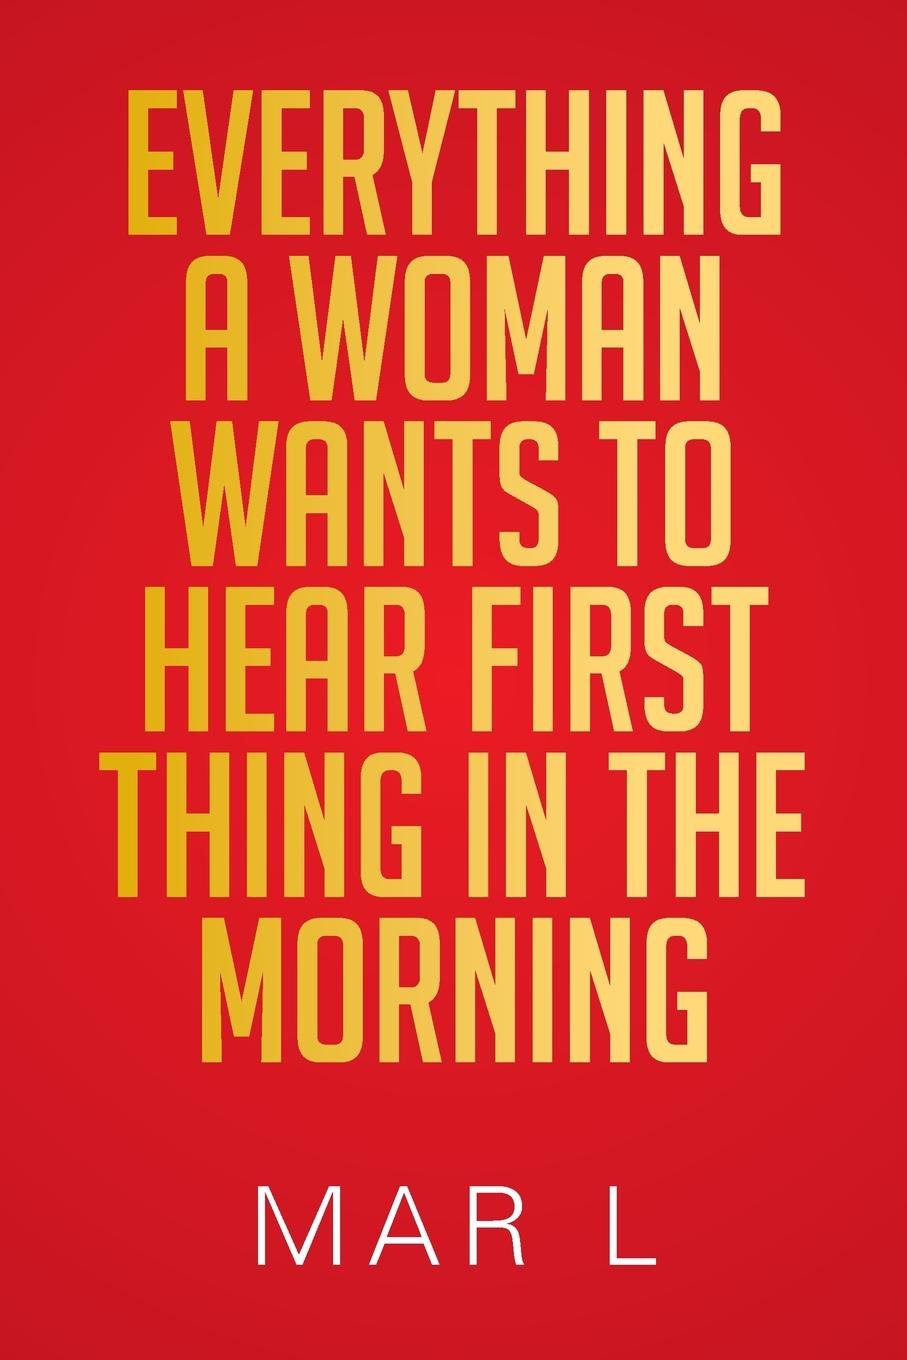 Mar L Everything a Woman Wants to Hear First Thing in the Morning